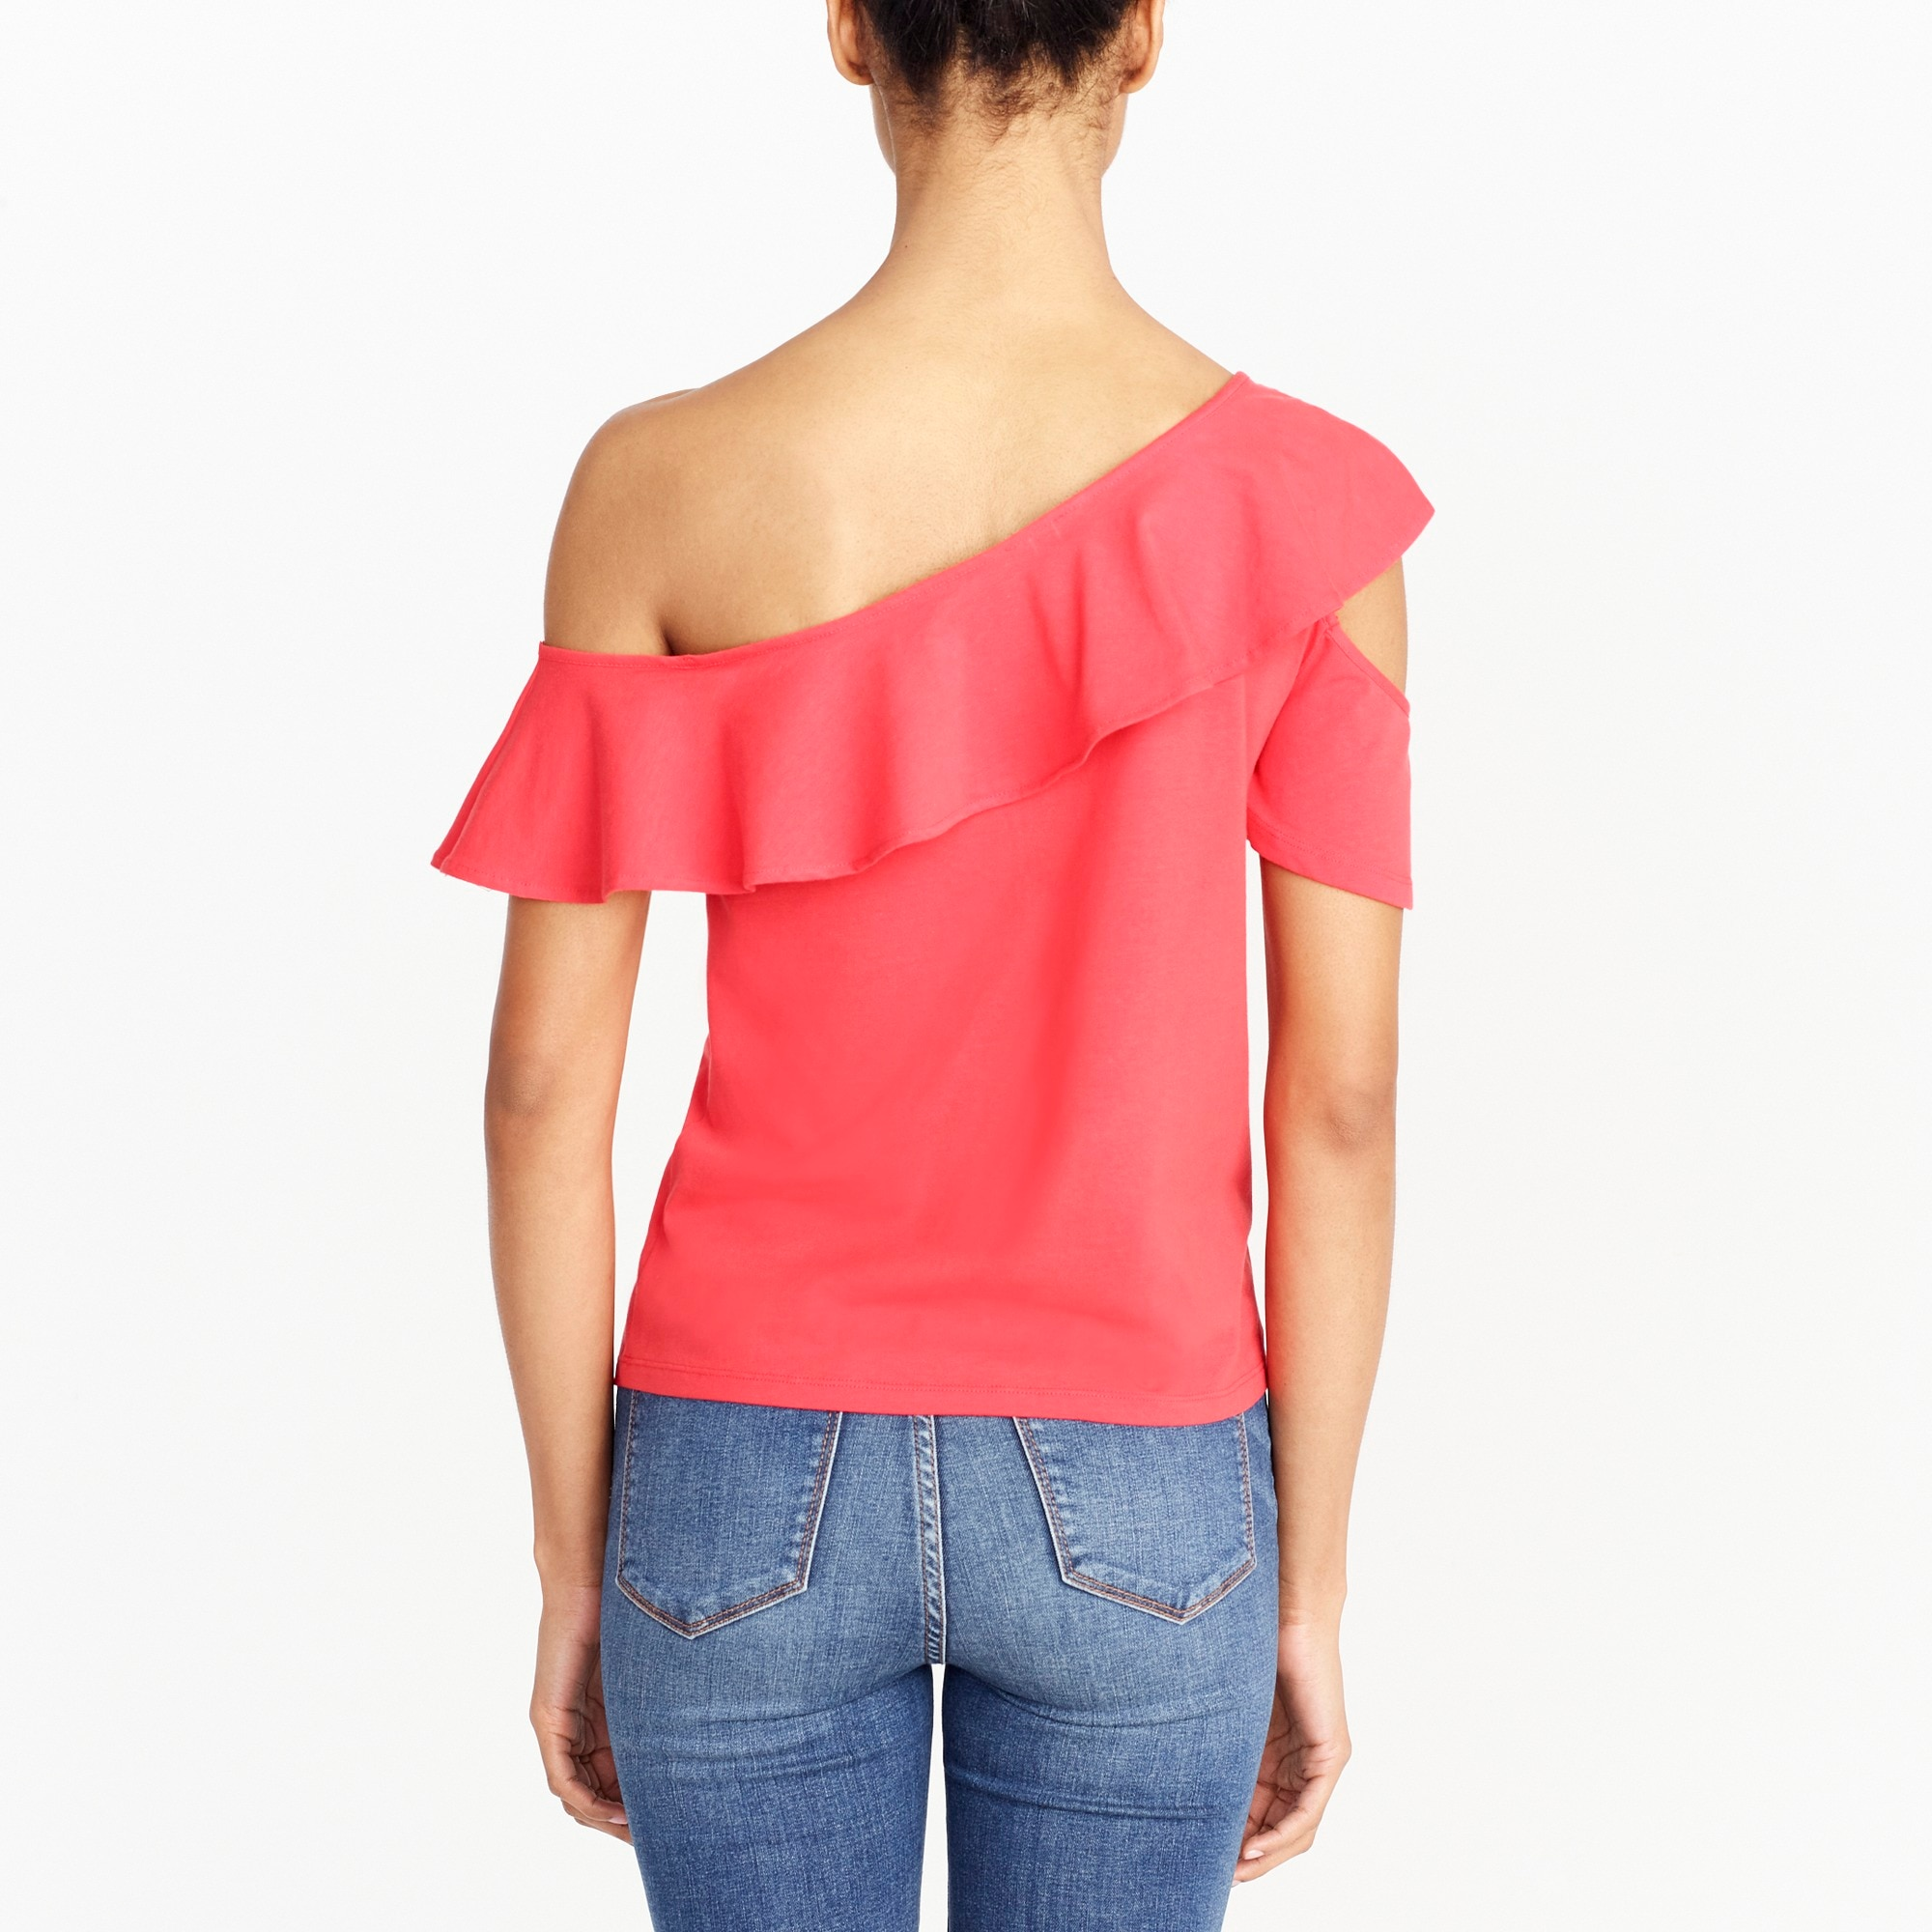 Image 2 for One-sleeve off-the-shoulder top